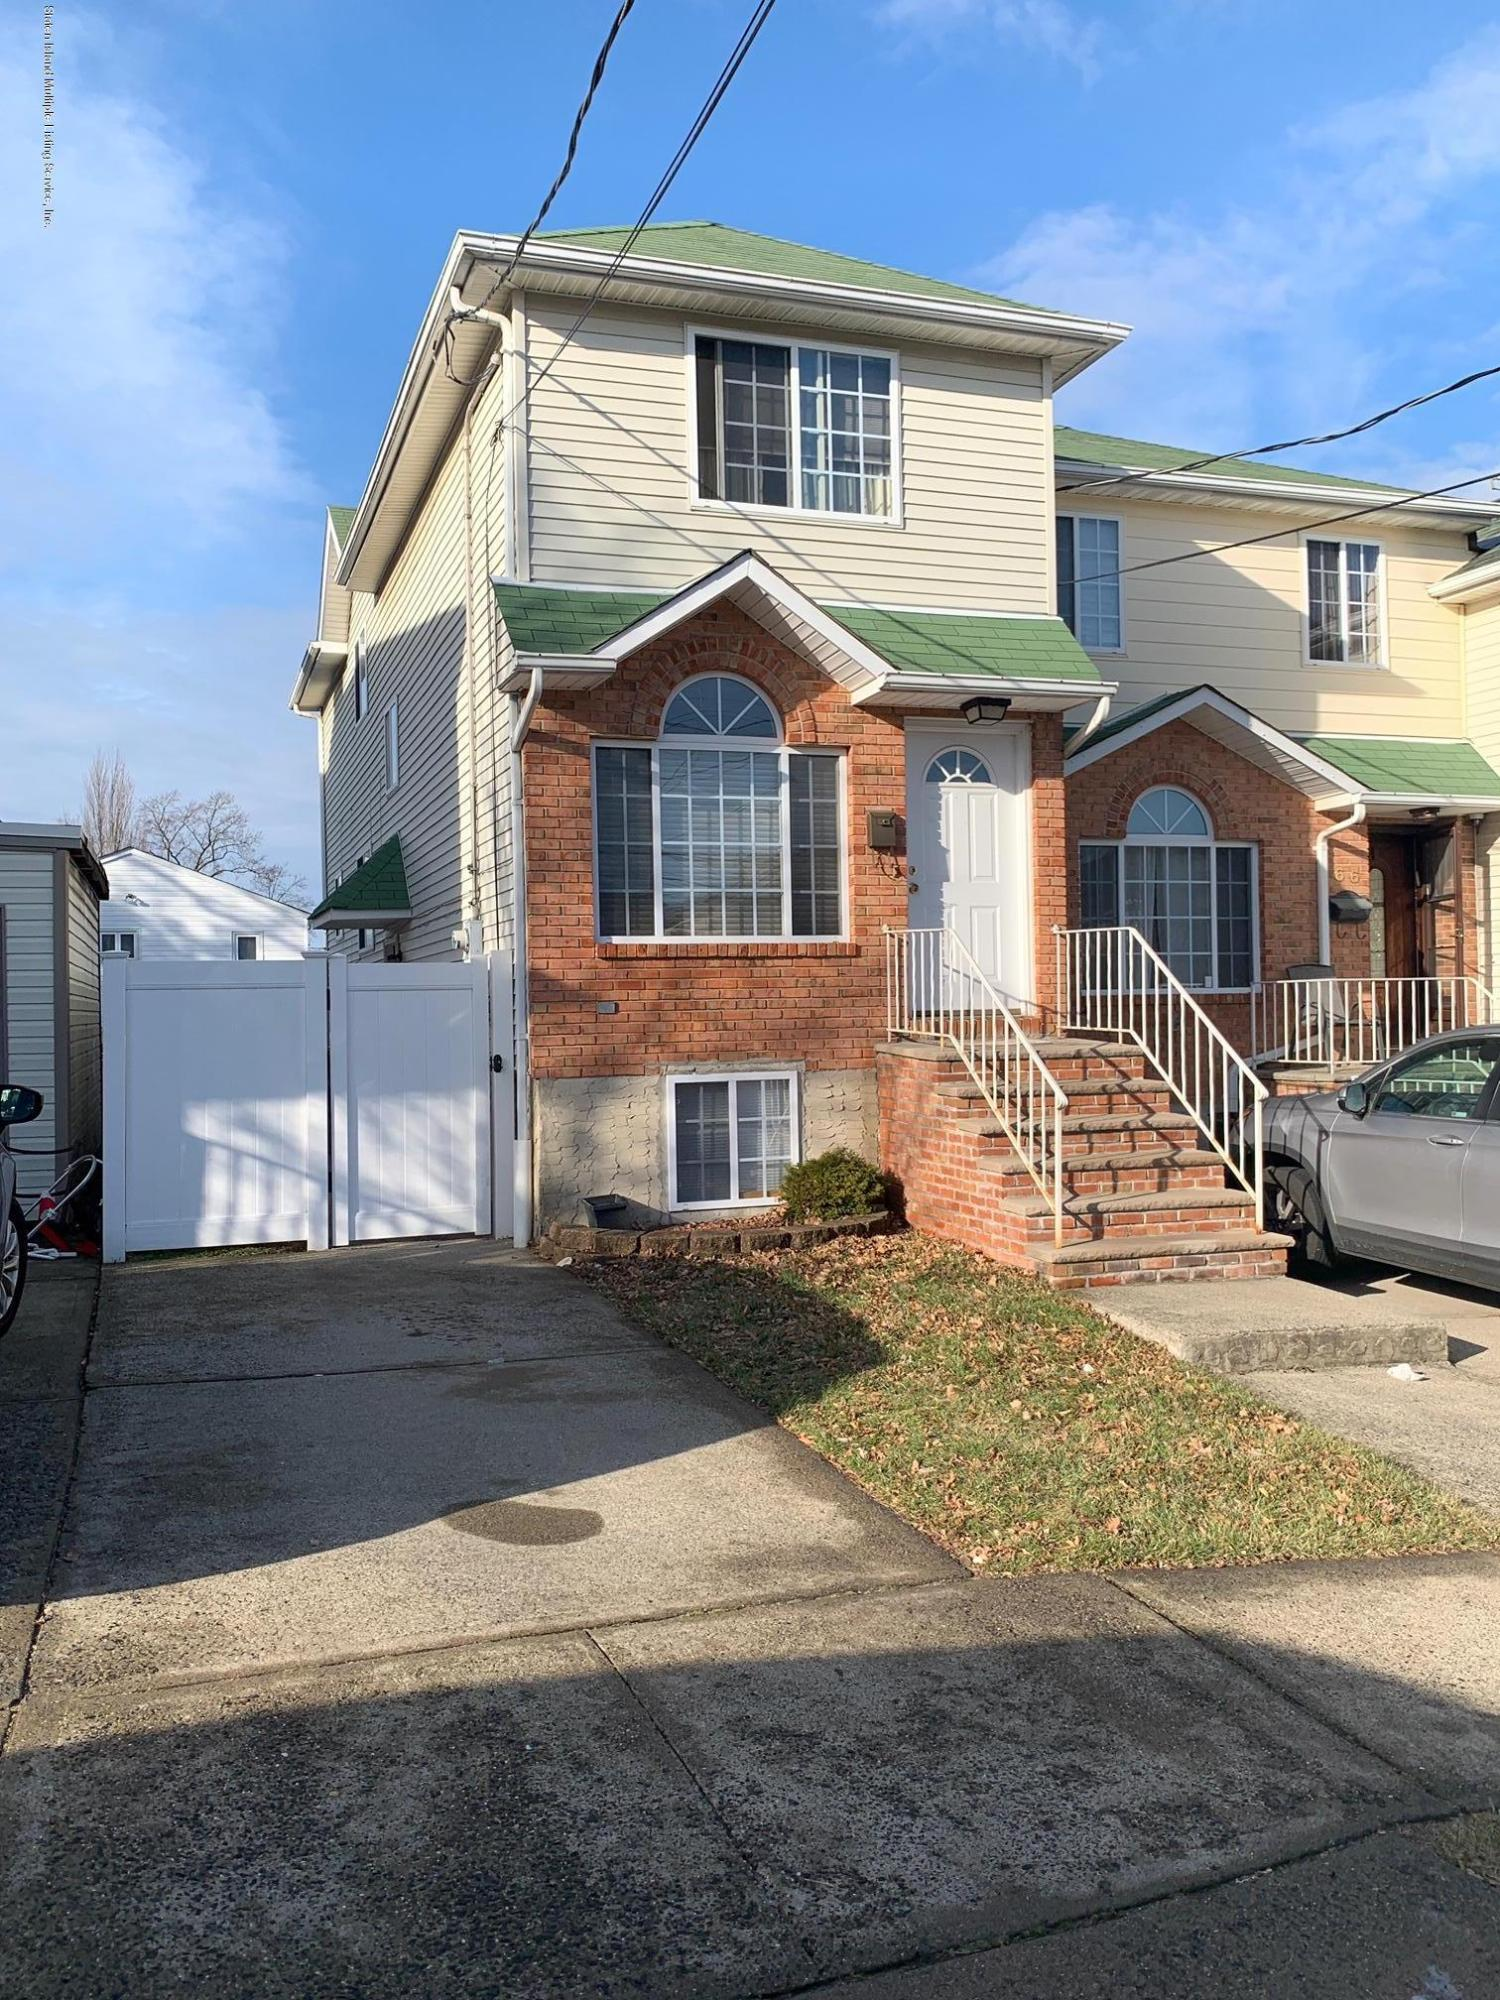 Single Family - Semi-Attached 68 Fillmore Avenue  Staten Island, NY 10314, MLS-1134808-2